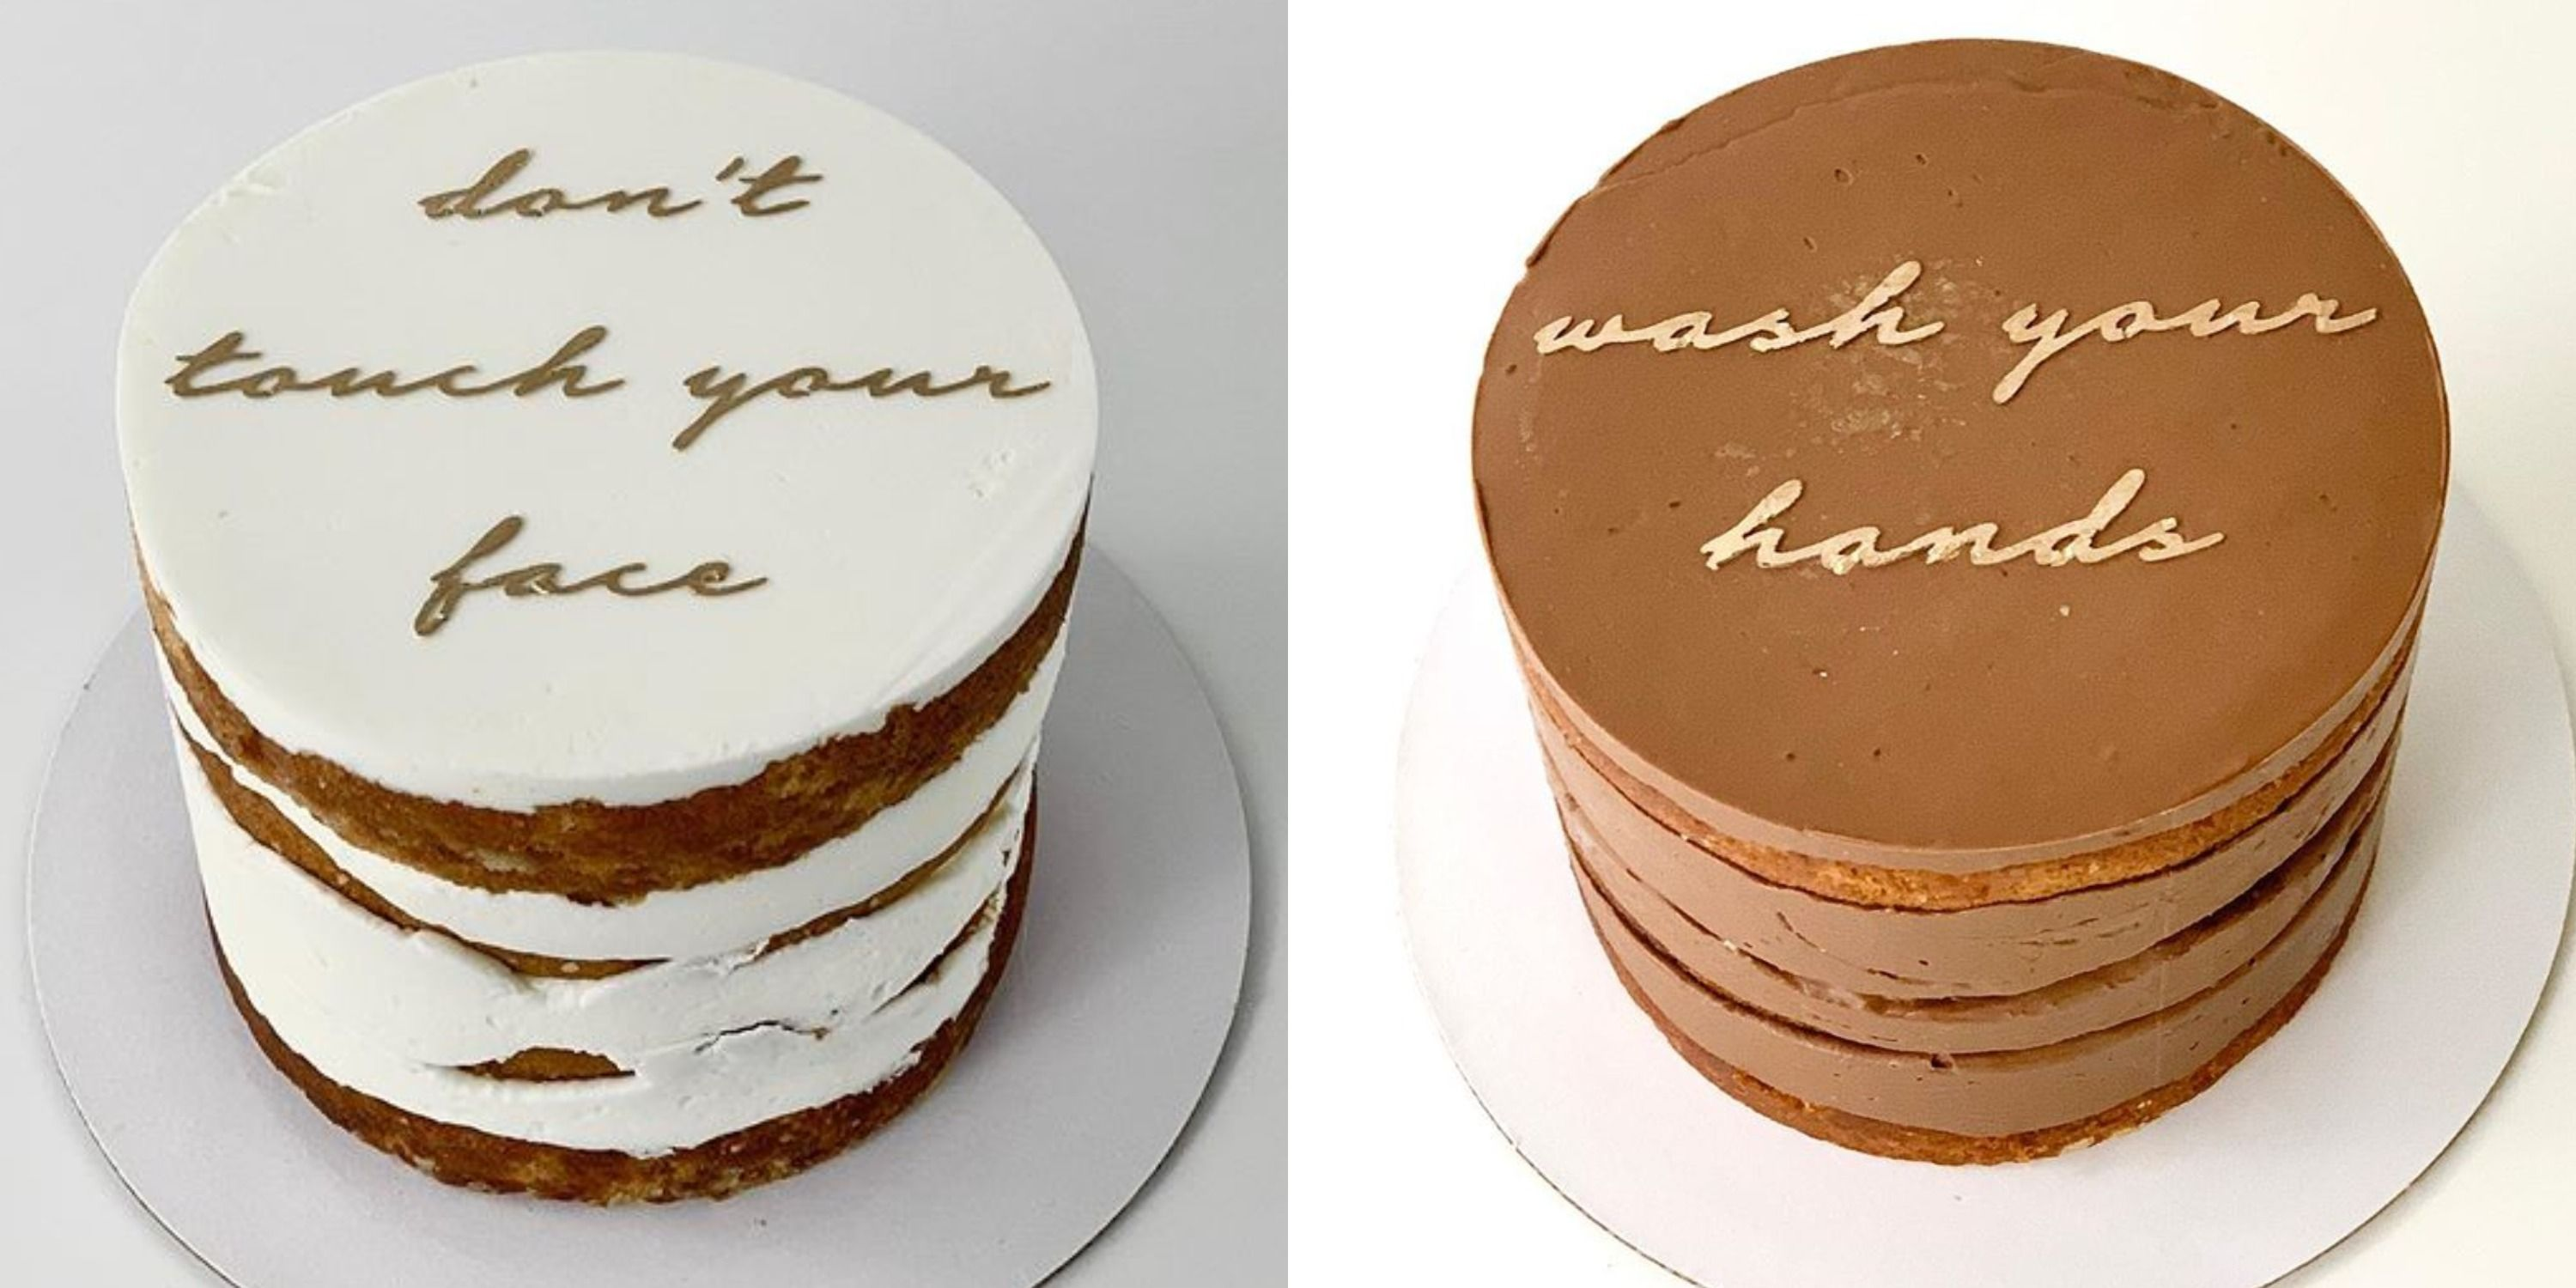 Wondrous A Bakery Is Selling Small Quarantine Cakes Personalised Birthday Cards Cominlily Jamesorg